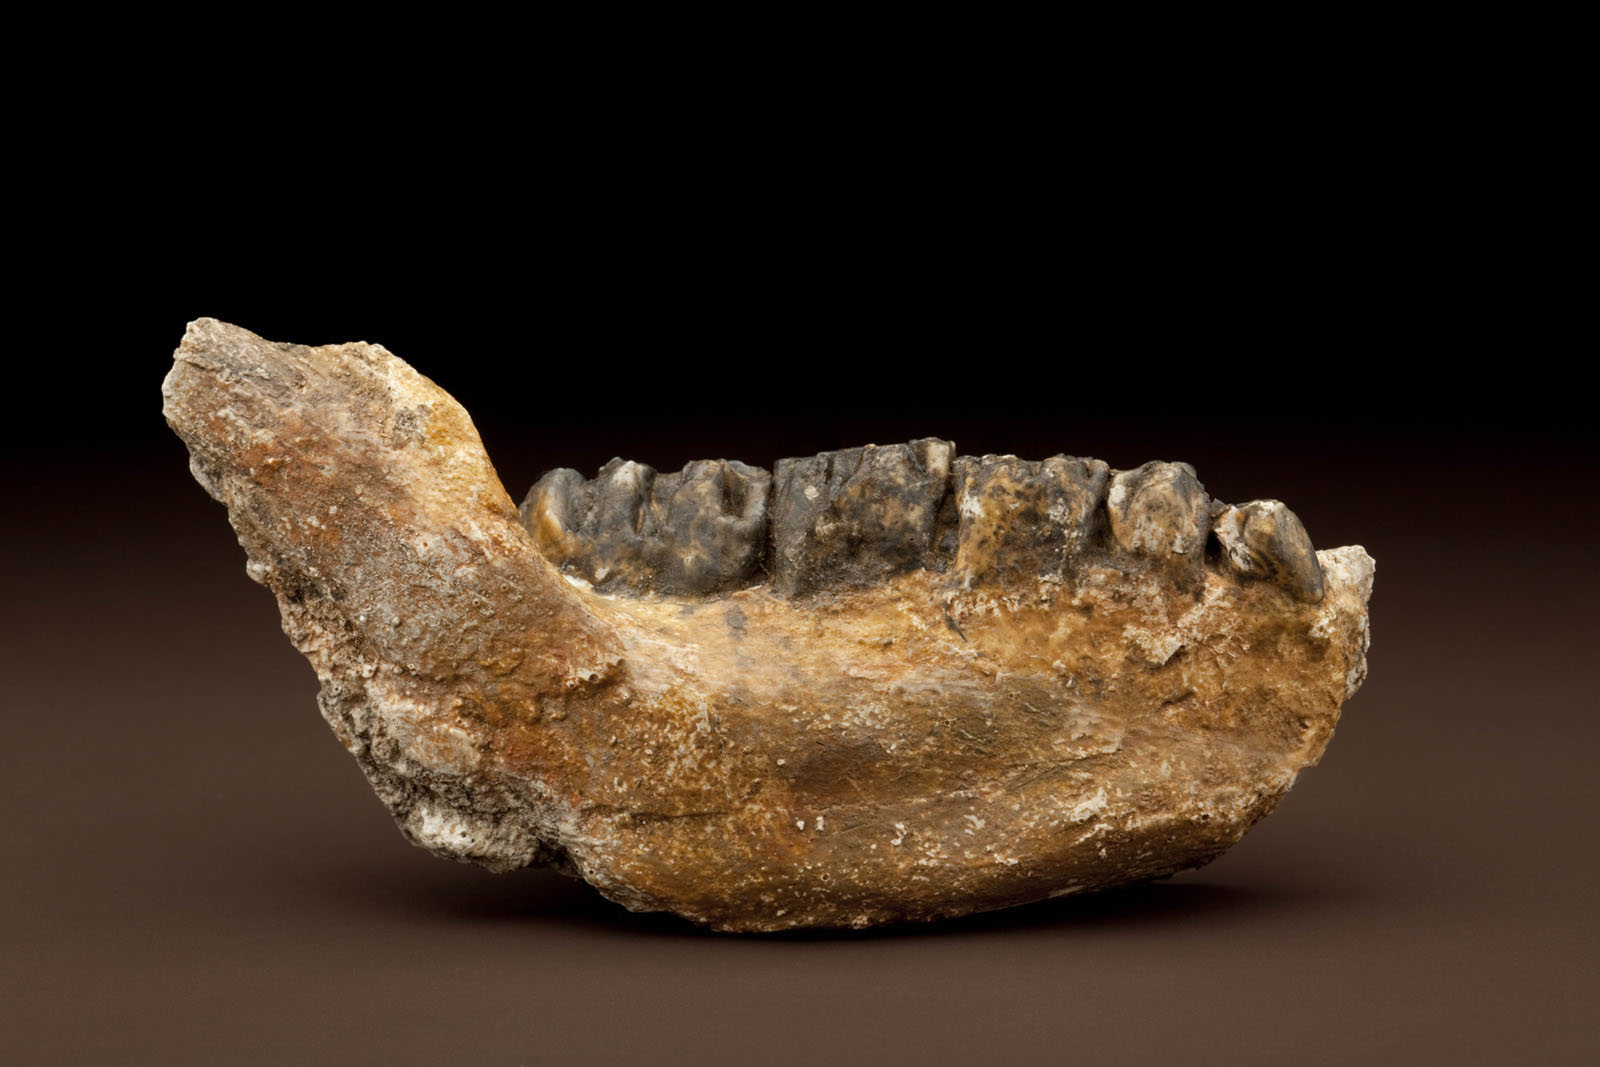 Theropithecus oswaldi mandible from Olorgesailie. Image courtesy of Chip Clark, Smithsonian Institution.